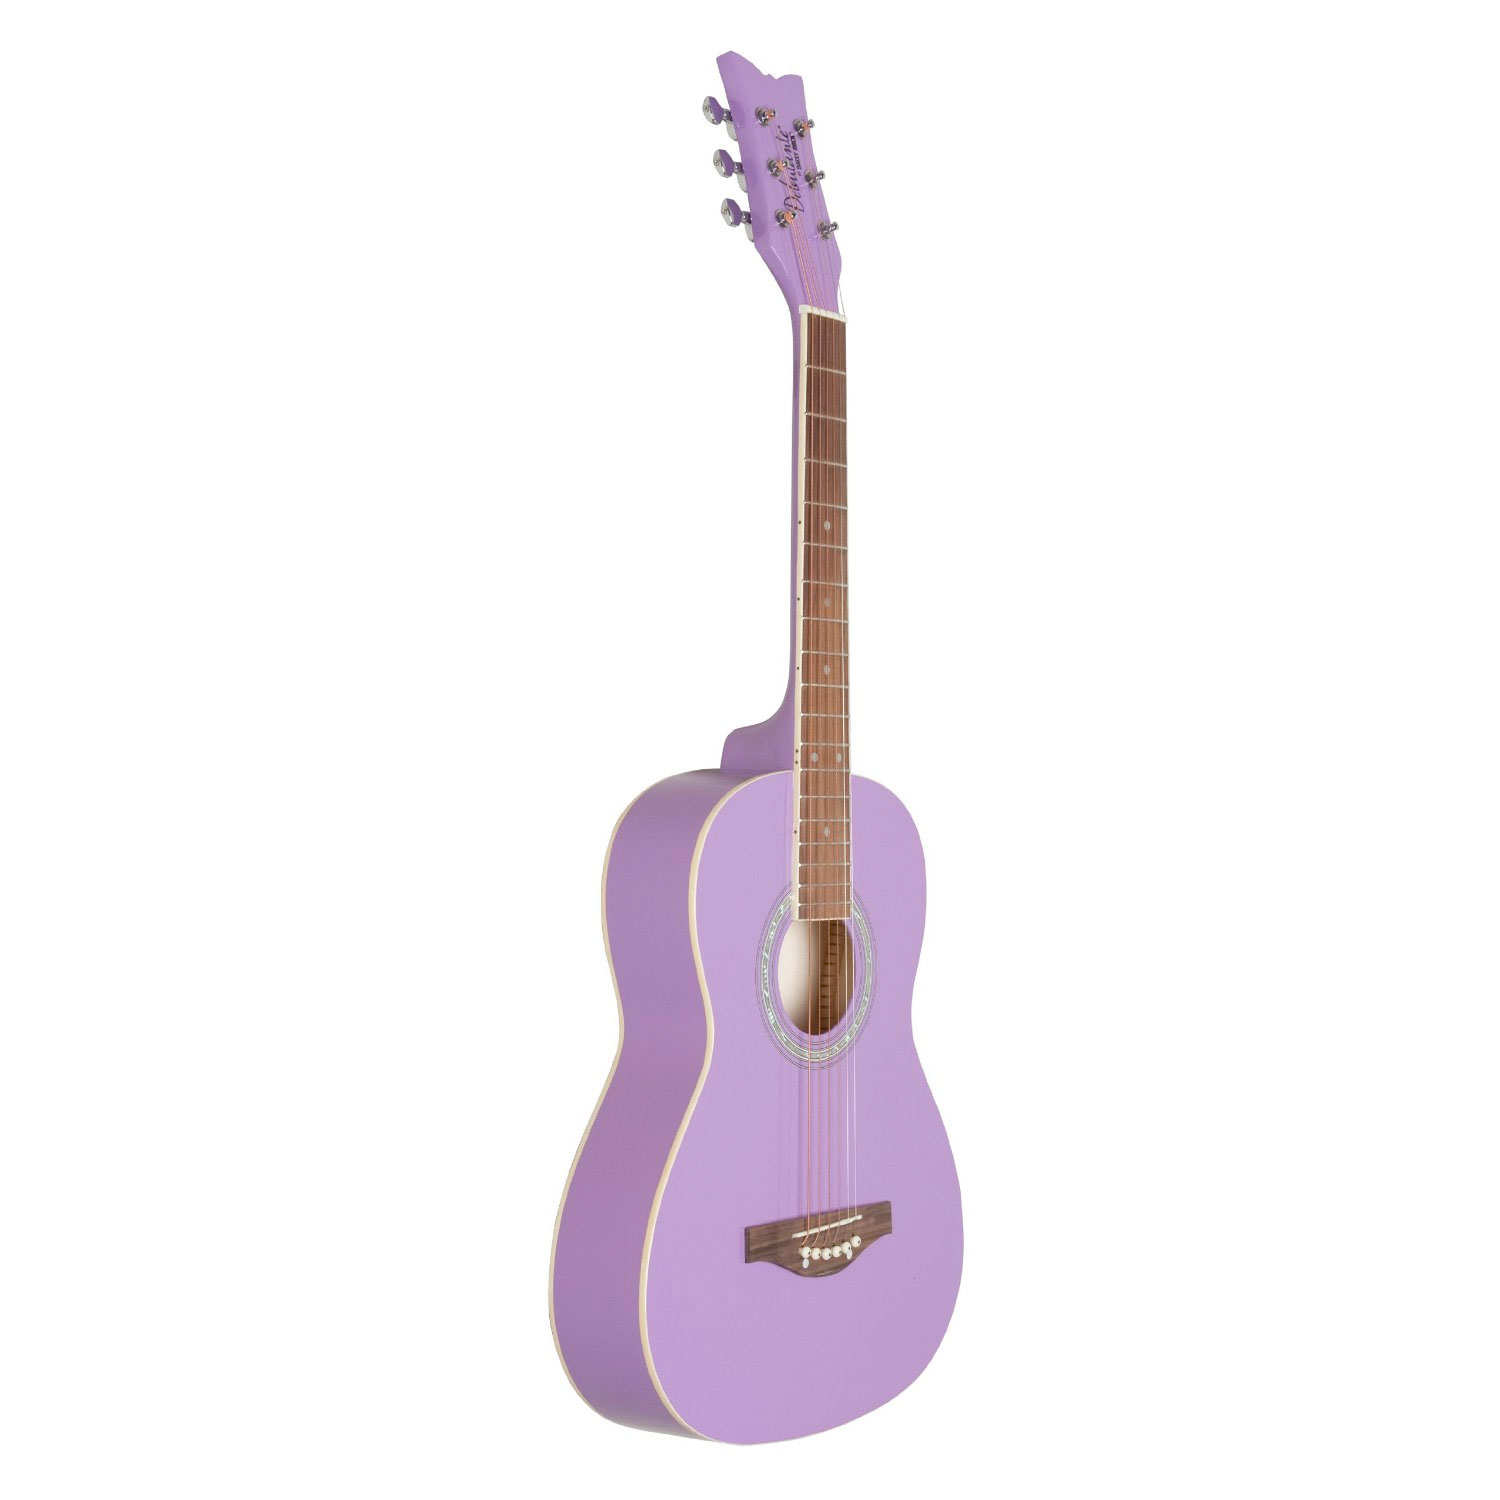 Daisy Rock Debutante Jr. Miss Acoustic Starter Pack - Popsicle Purple Angled Front View